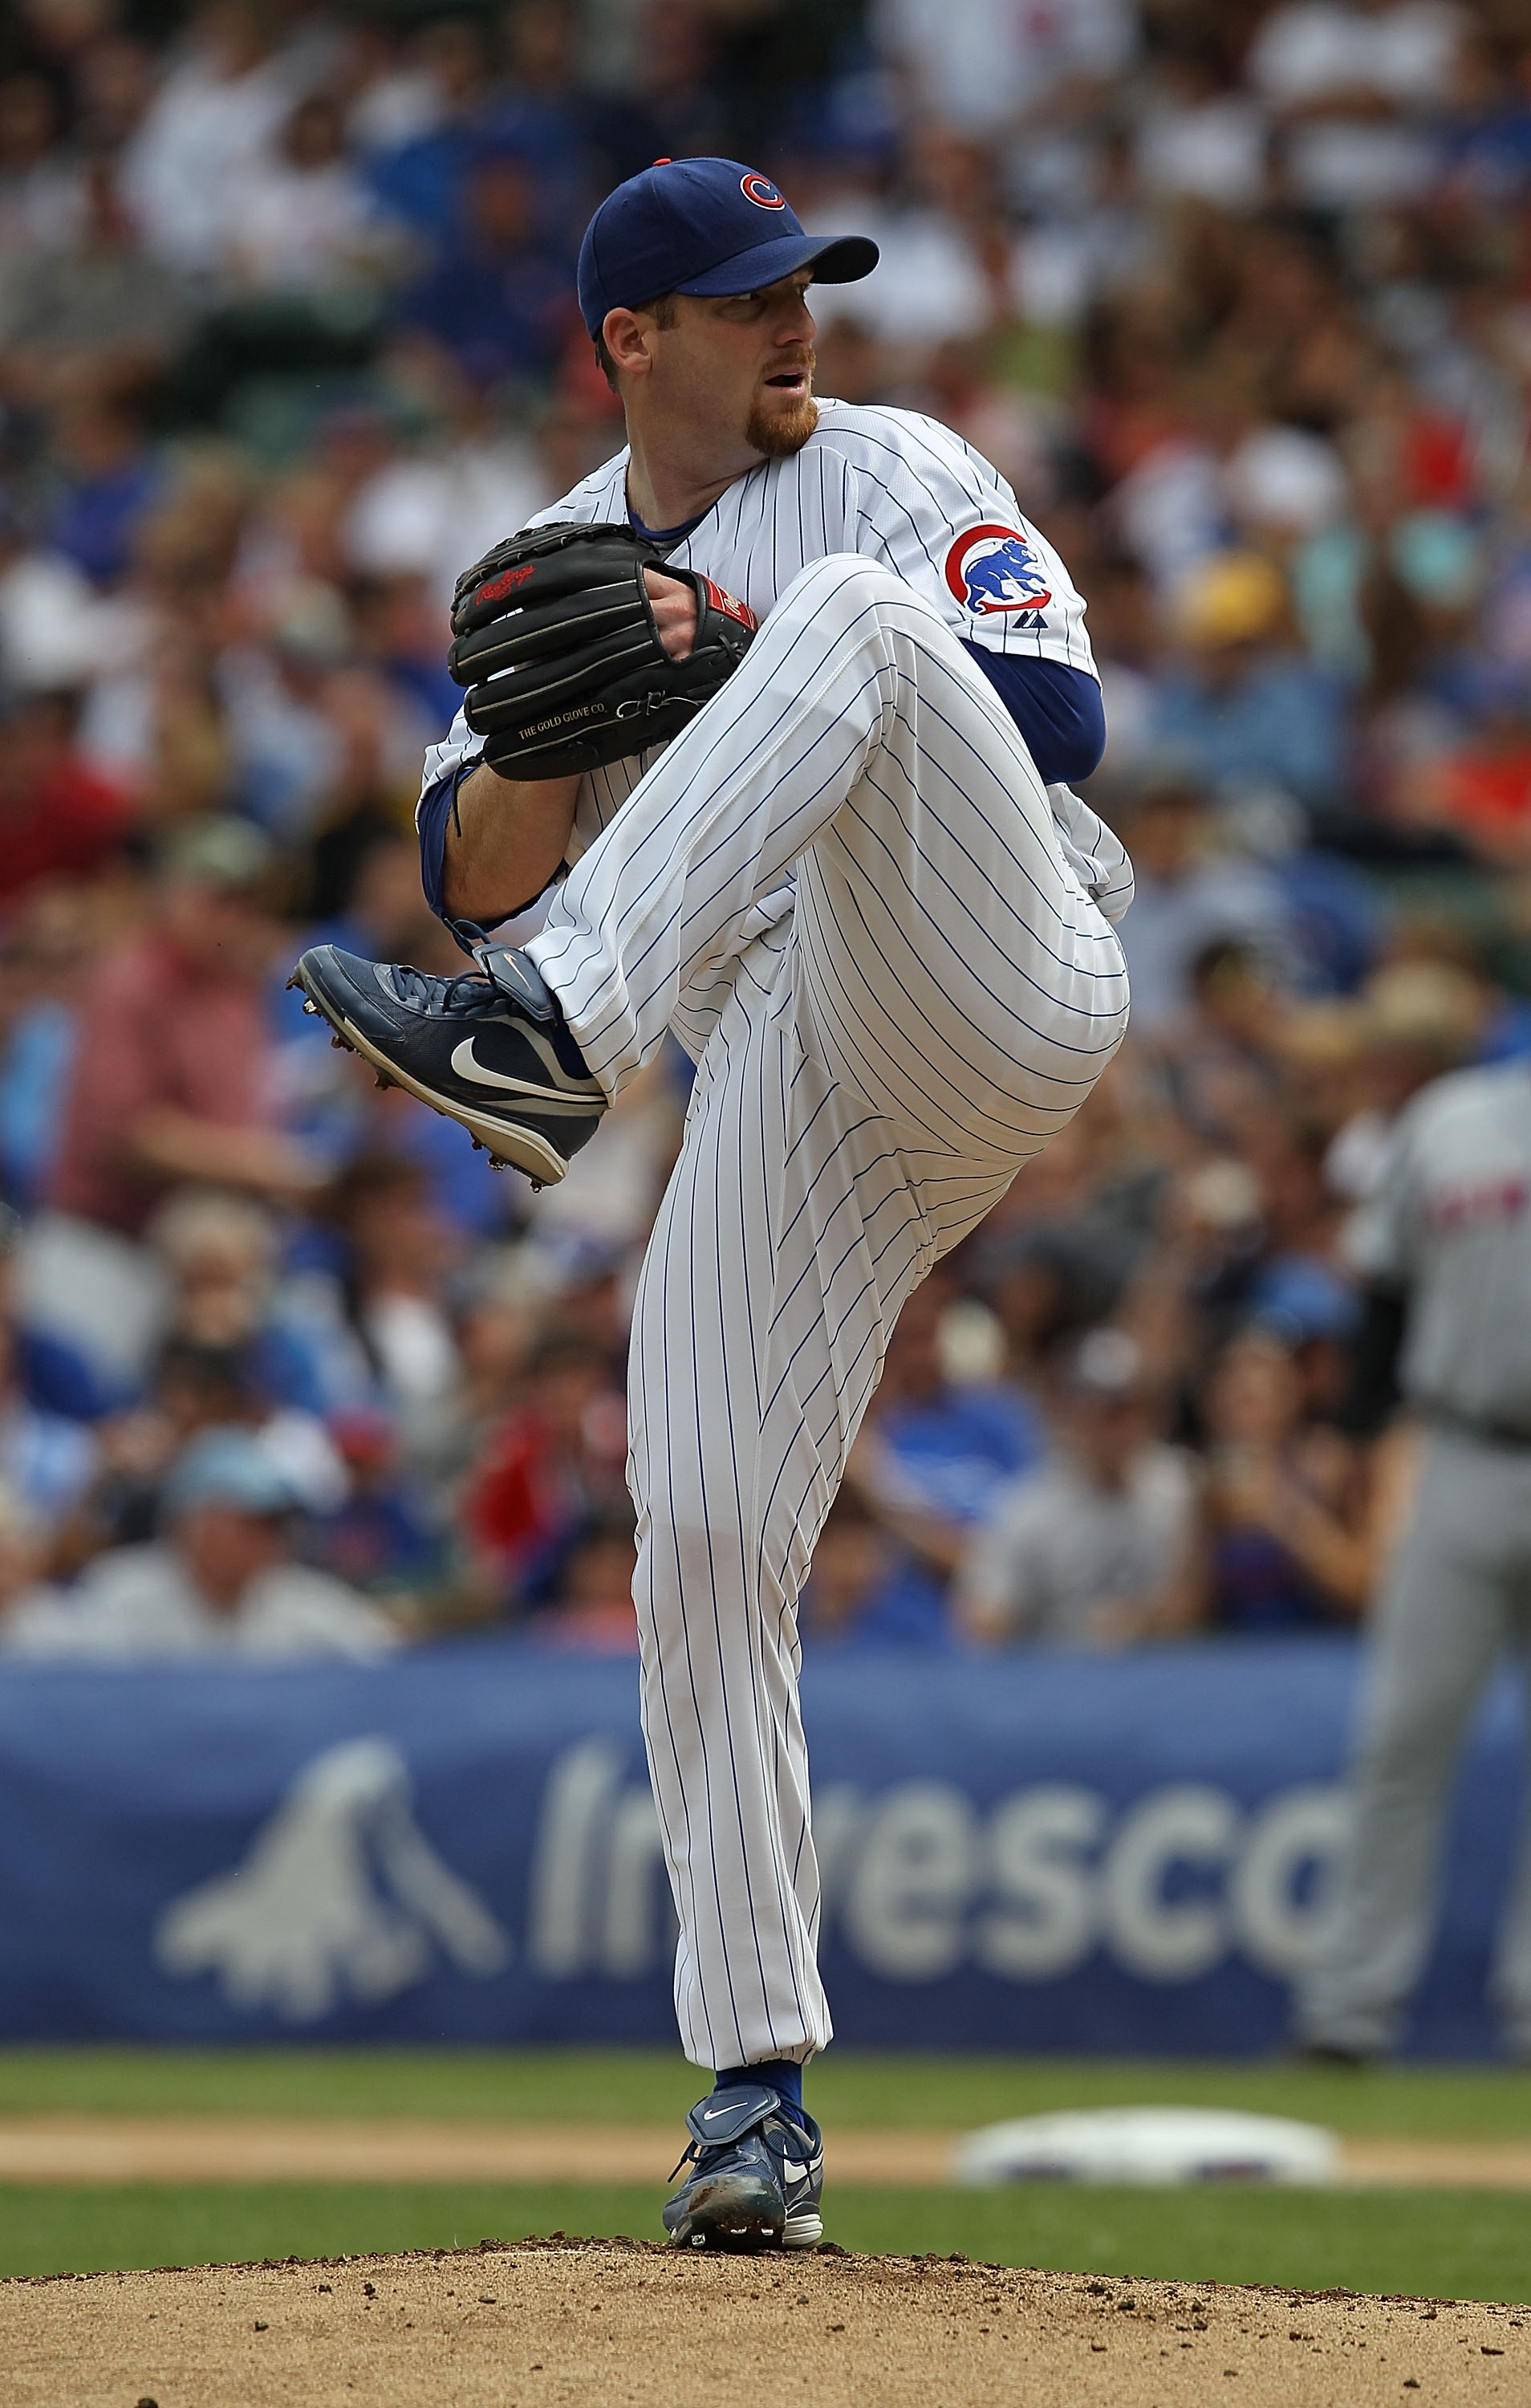 CHICAGO - SEPTEMBER 05: Starting pitcher Ryan Dempster #46 of the Chicago Cubs delivers the ball against the New York Mets at Wrigley Field on September 5, 2010 in Chicago, Illinois. The Mets defeated the Cubs 18-5. (Photo by Jonathan Daniel/Getty Images)